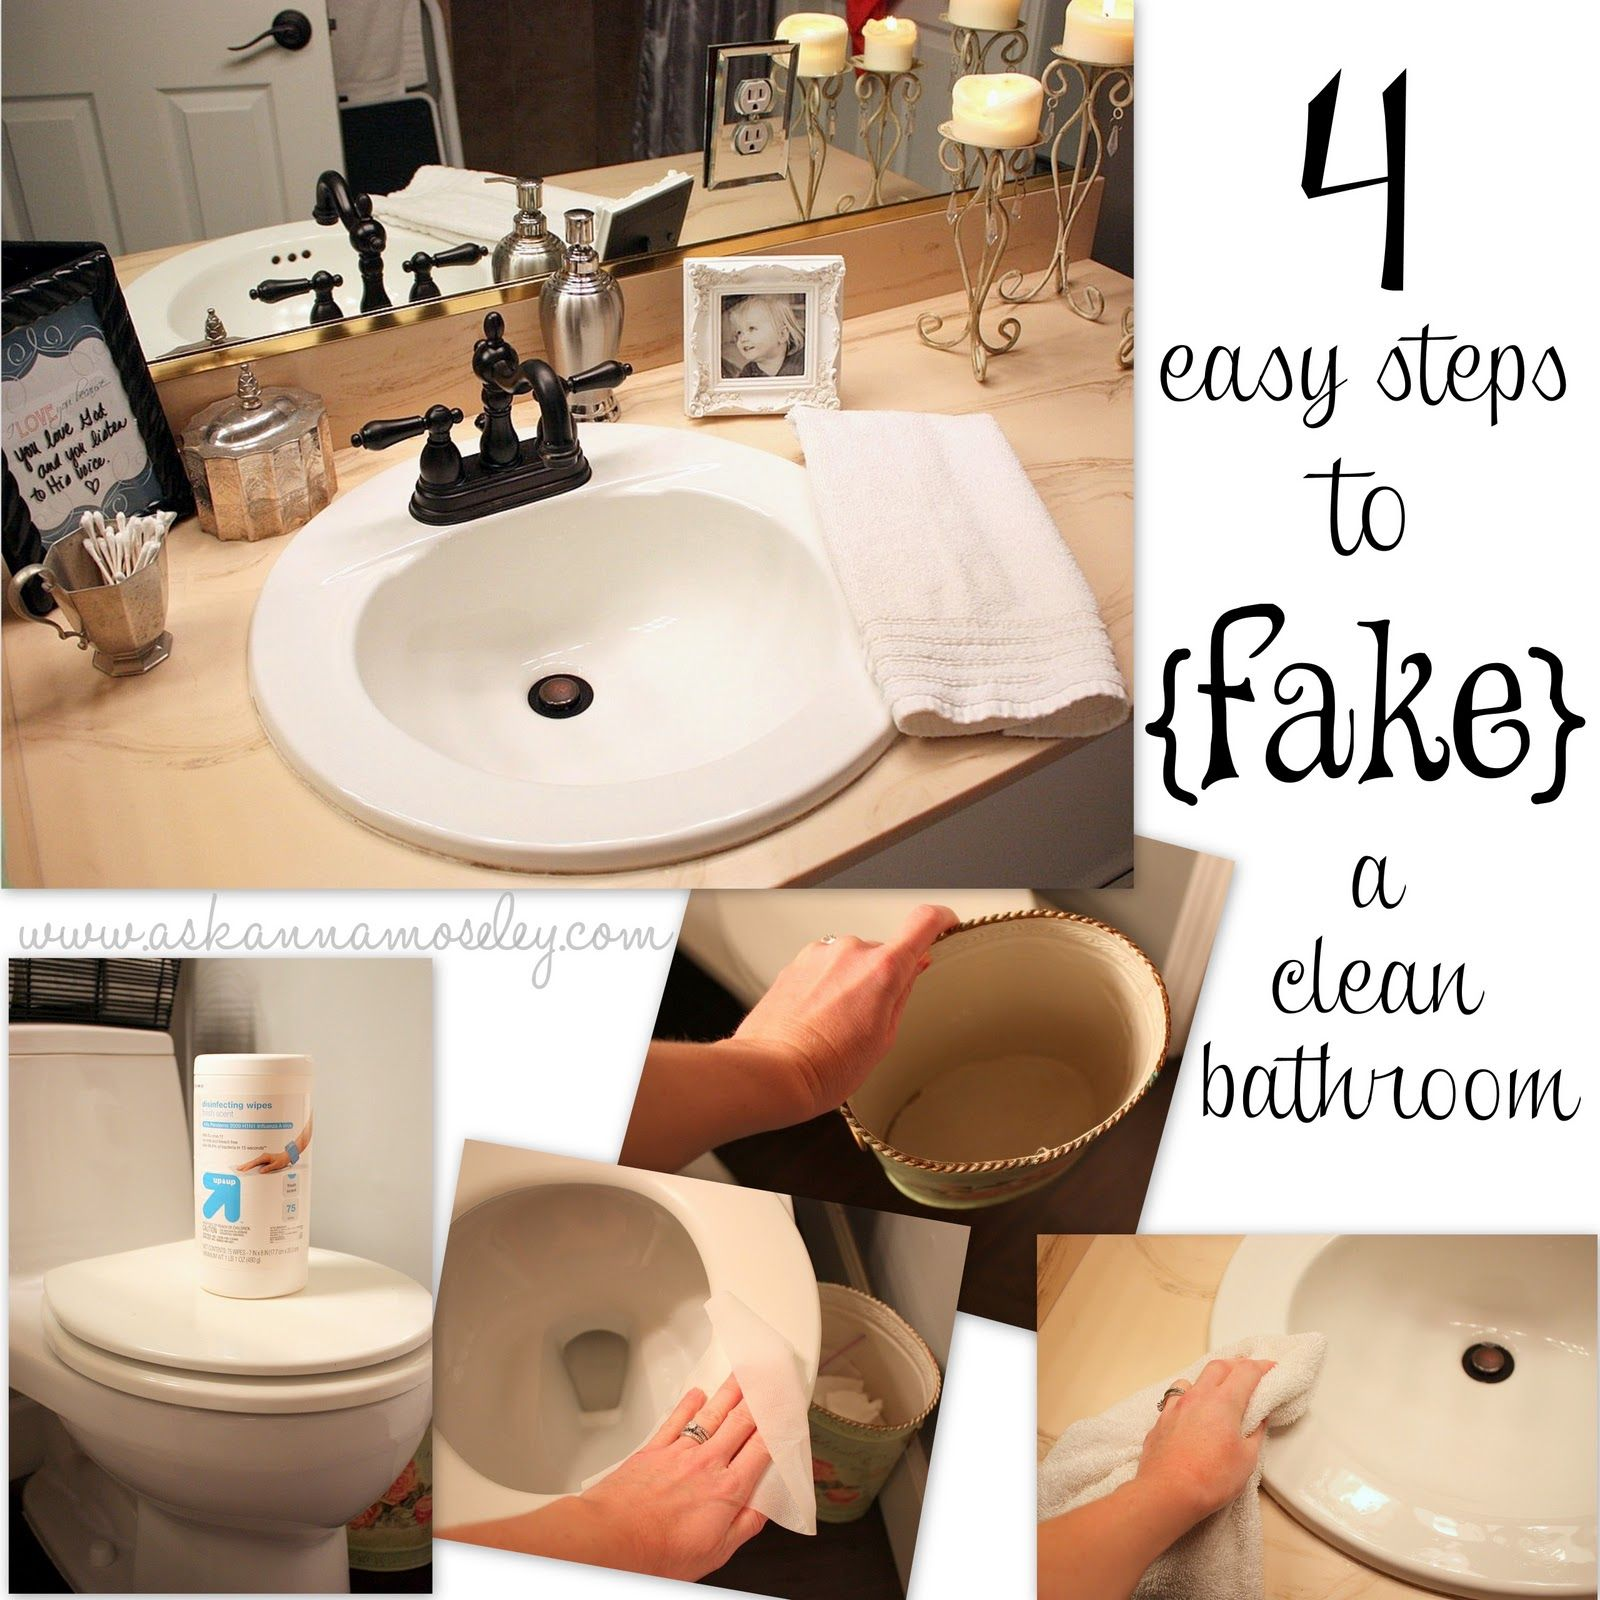 How To {fake} A Clean Bathroom   Quick Cleaning Tips From Ask Anna!